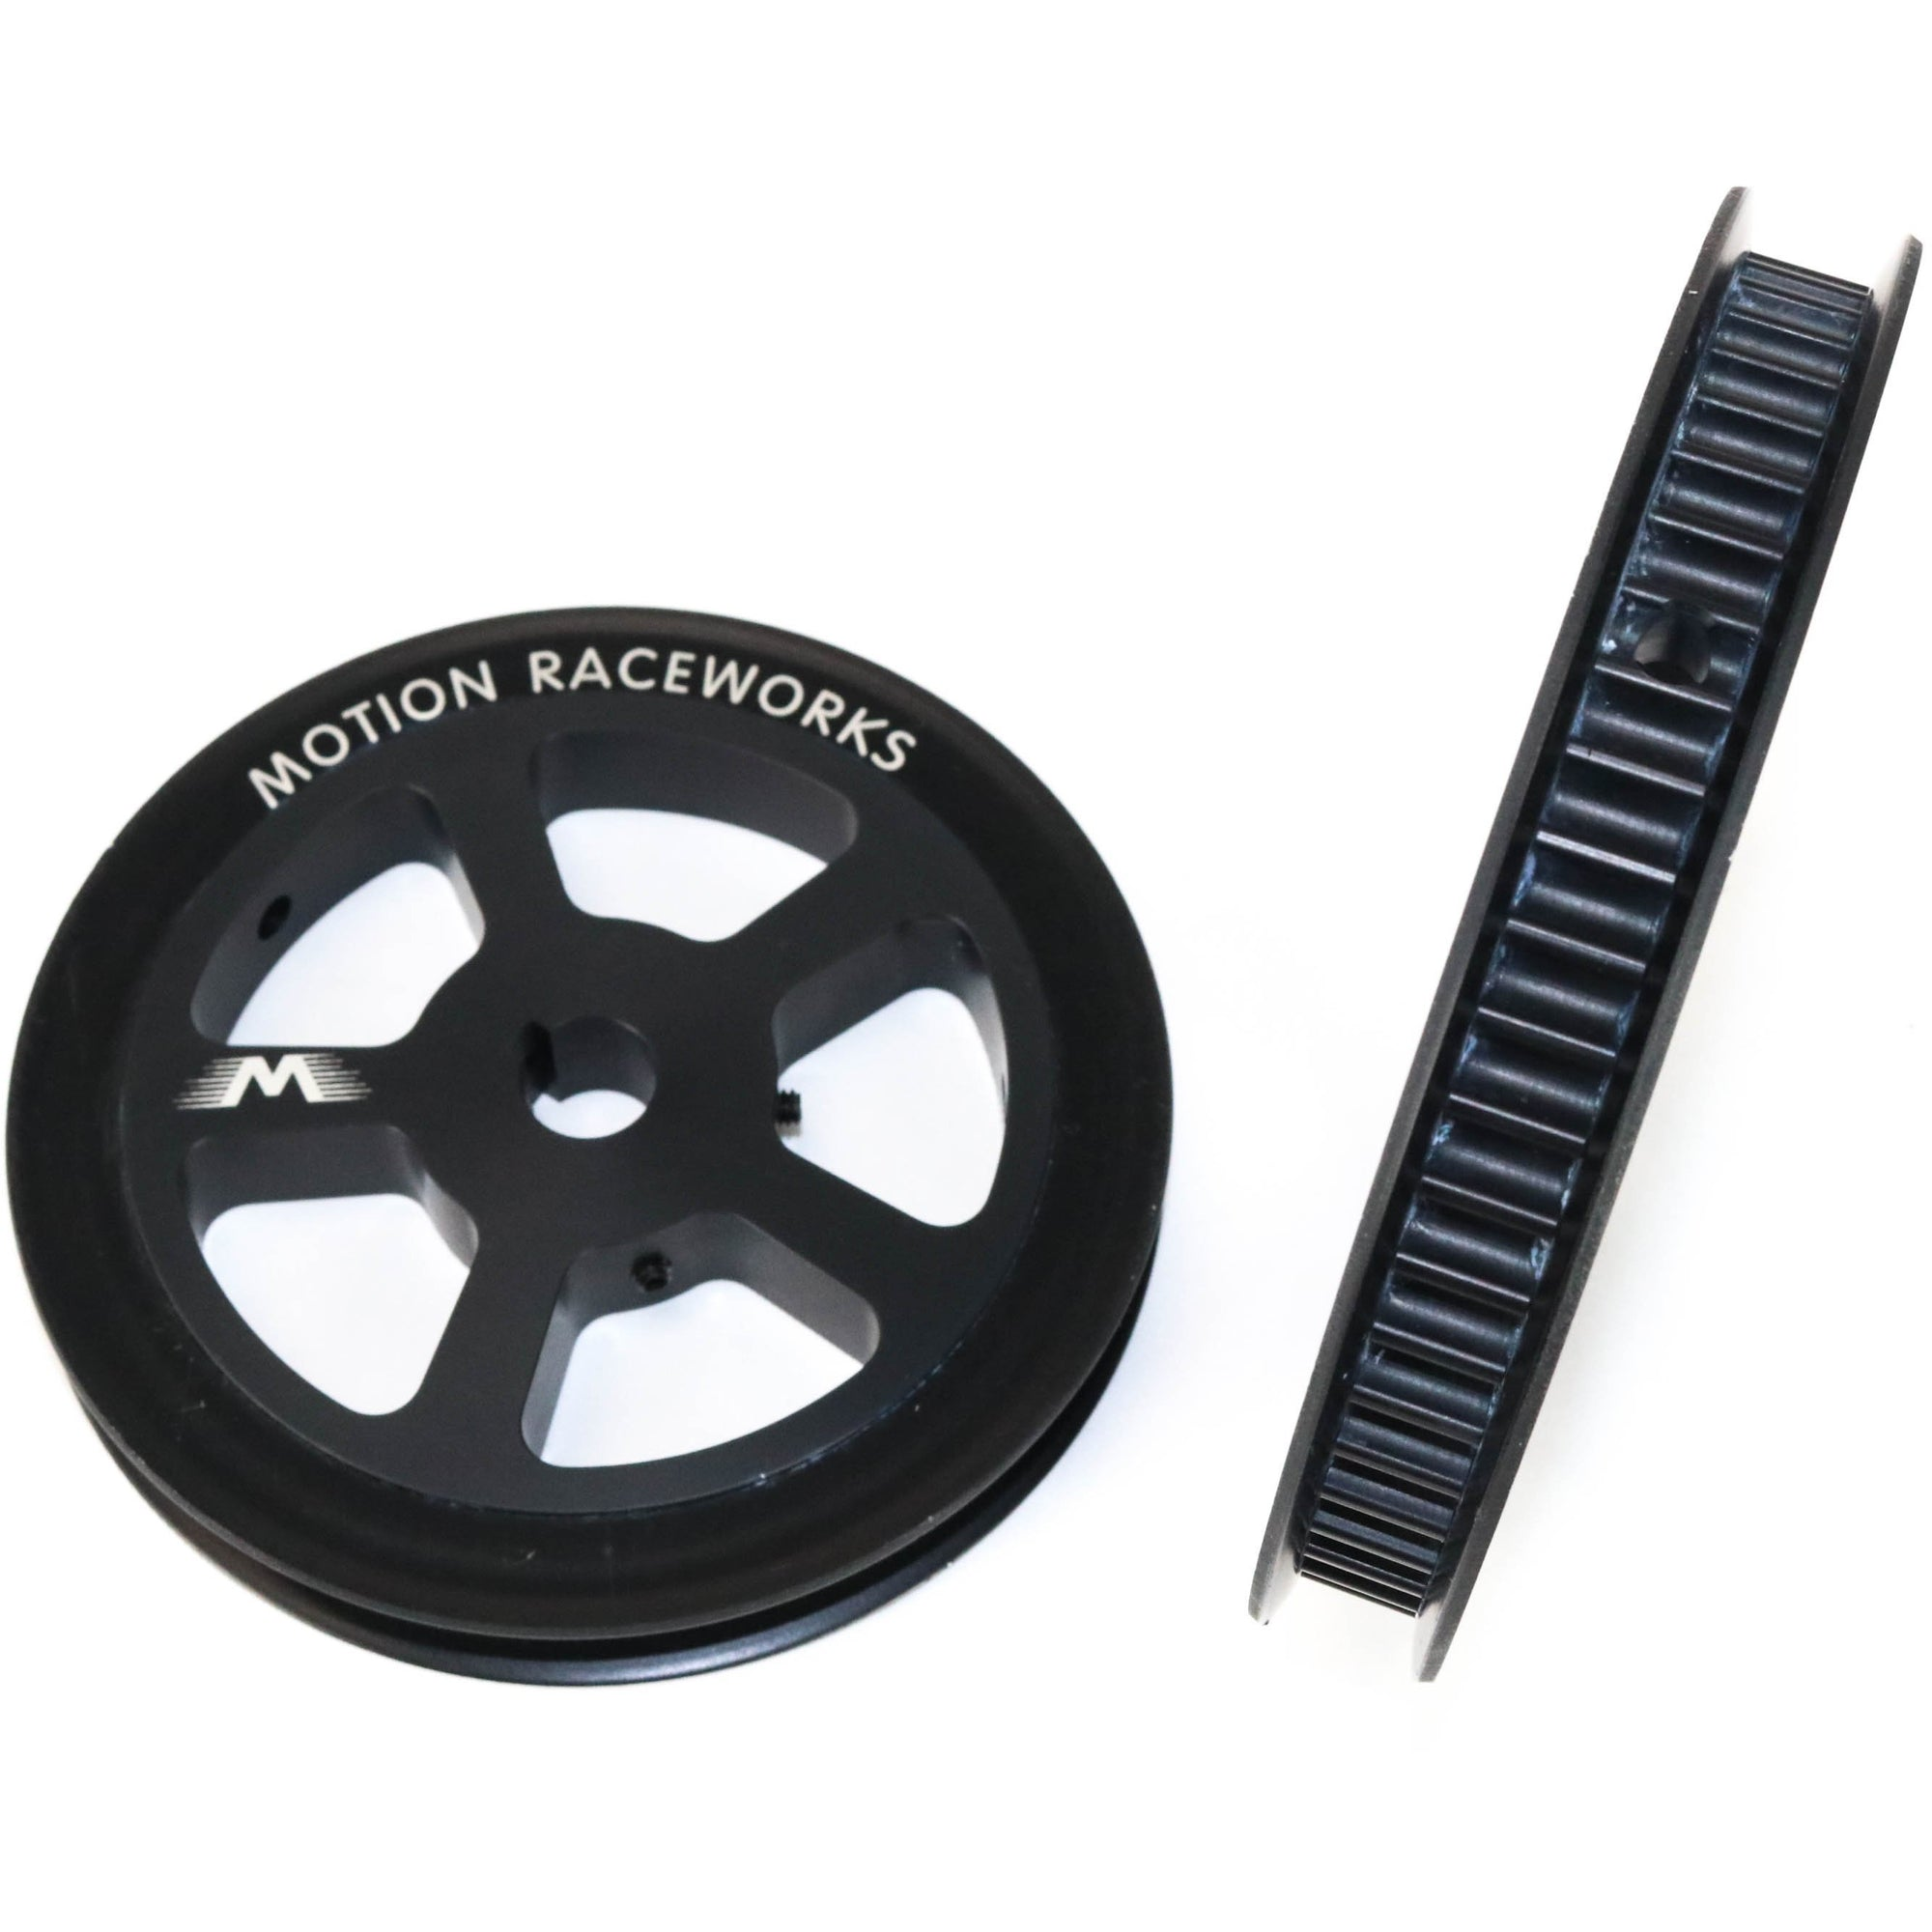 Motion Raceworks 56 tooth 8mm HTD Pulley for 5/8 Hex shaft - Motion Raceworks